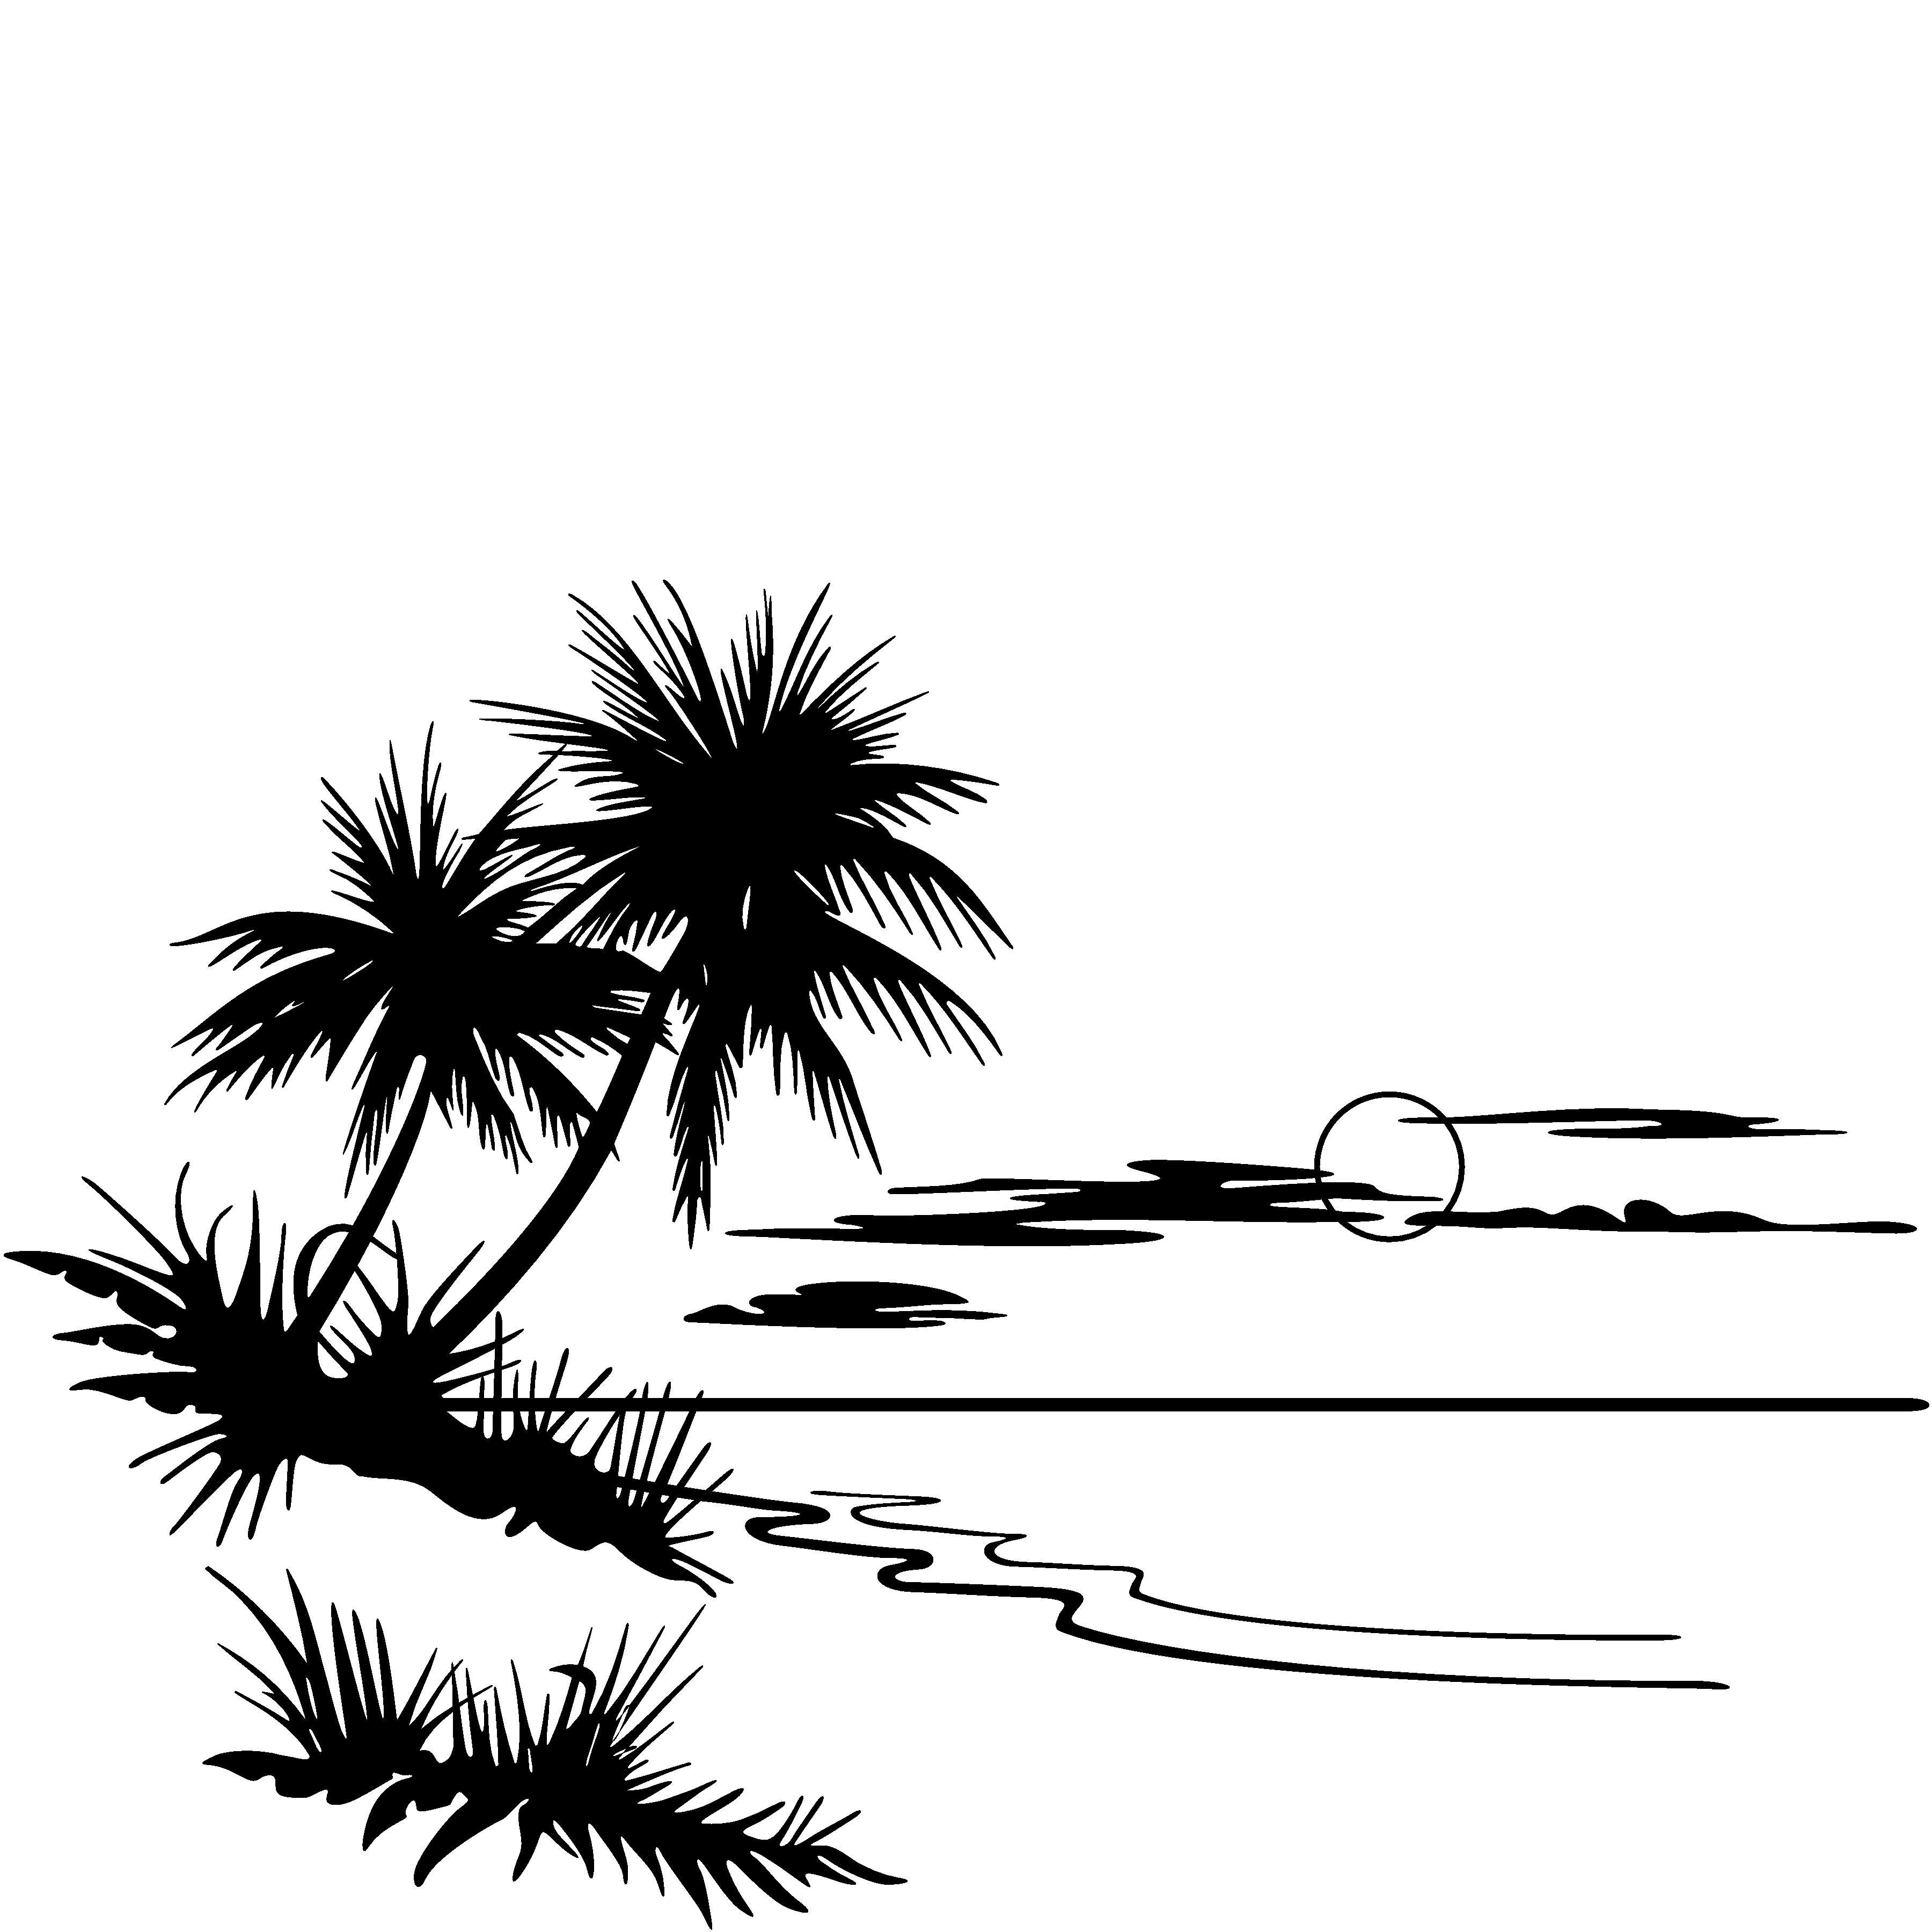 Sunset black and white clipart 4 » Clipart Portal.